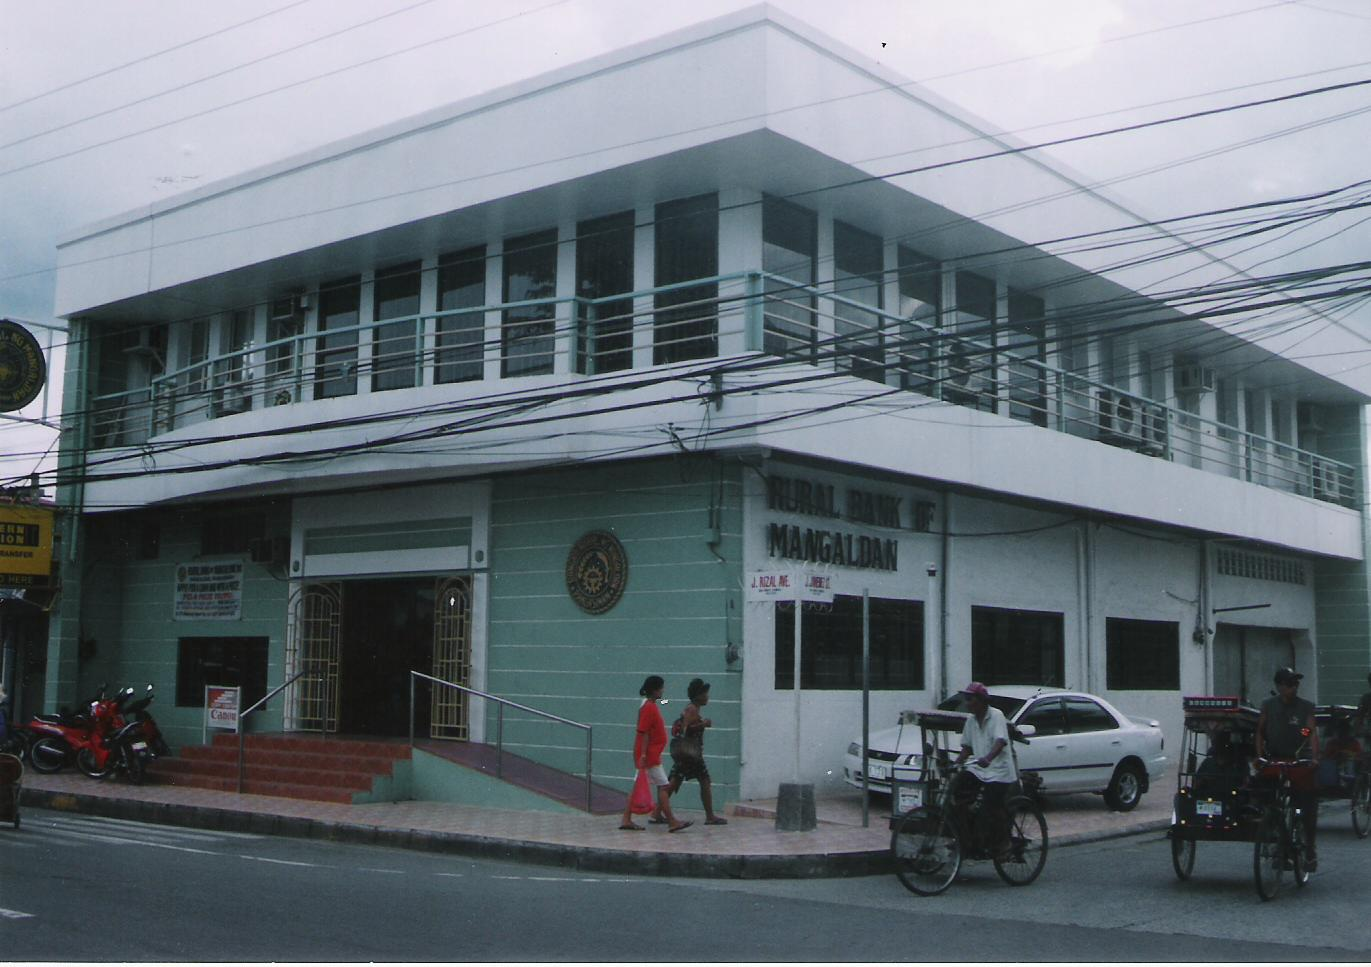 Mangaldan Philippines  City pictures : The Evolution of Rural Bank of Mangaldan: The original old building of ...